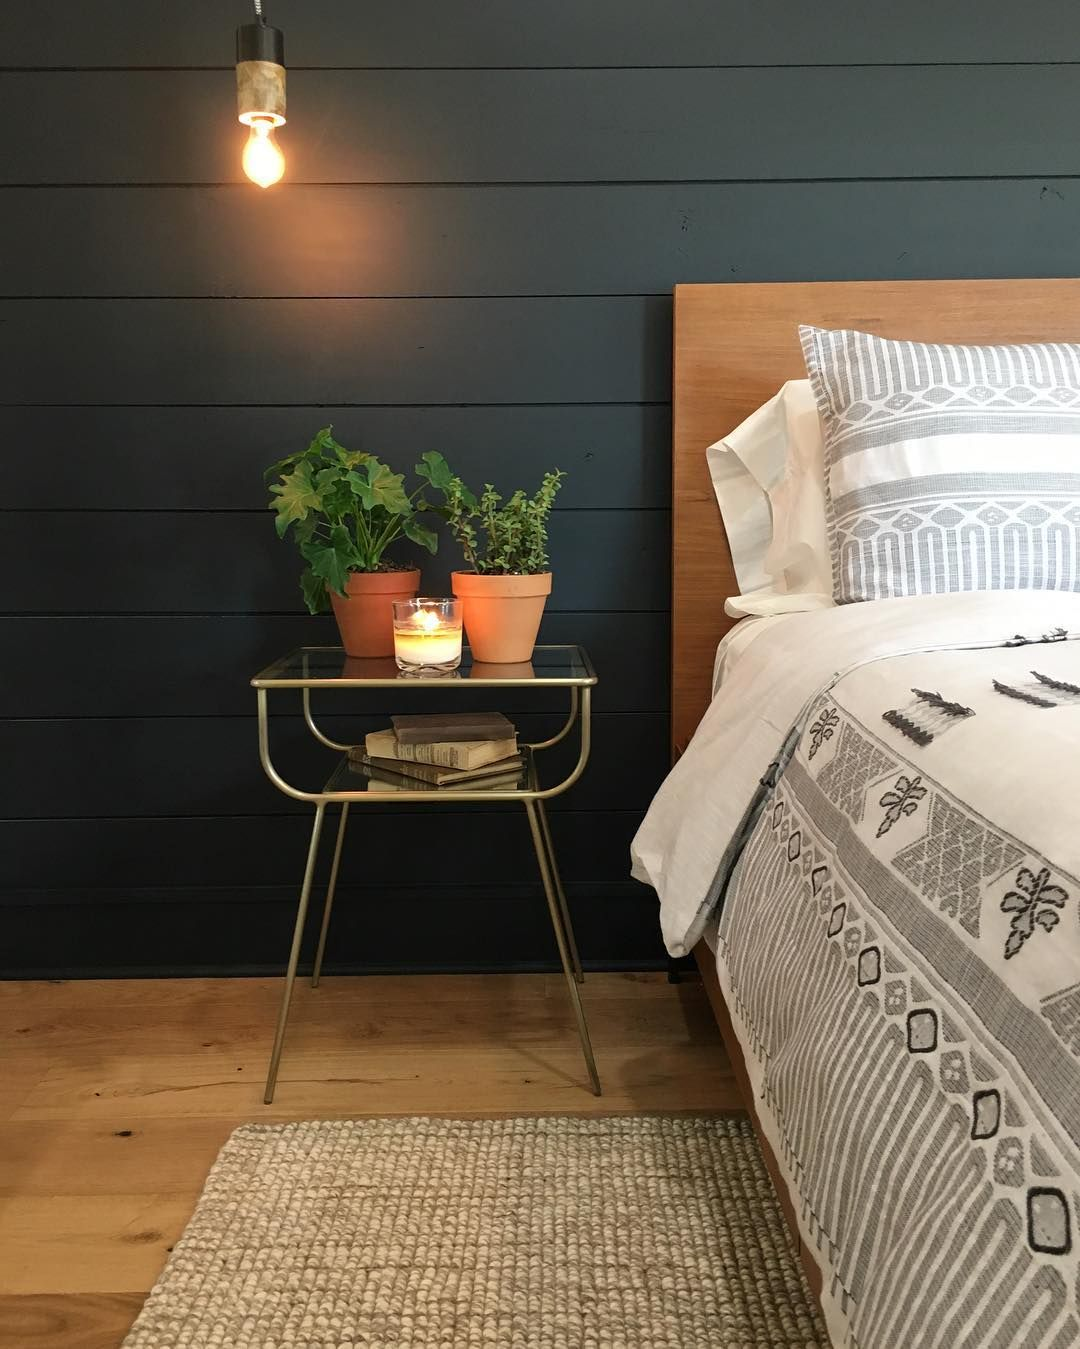 15 Black Shiplap Ideas How To Style The Black Shiplap Trend Shiplap Bedroom Home Decor Bedroom Home Bedroom